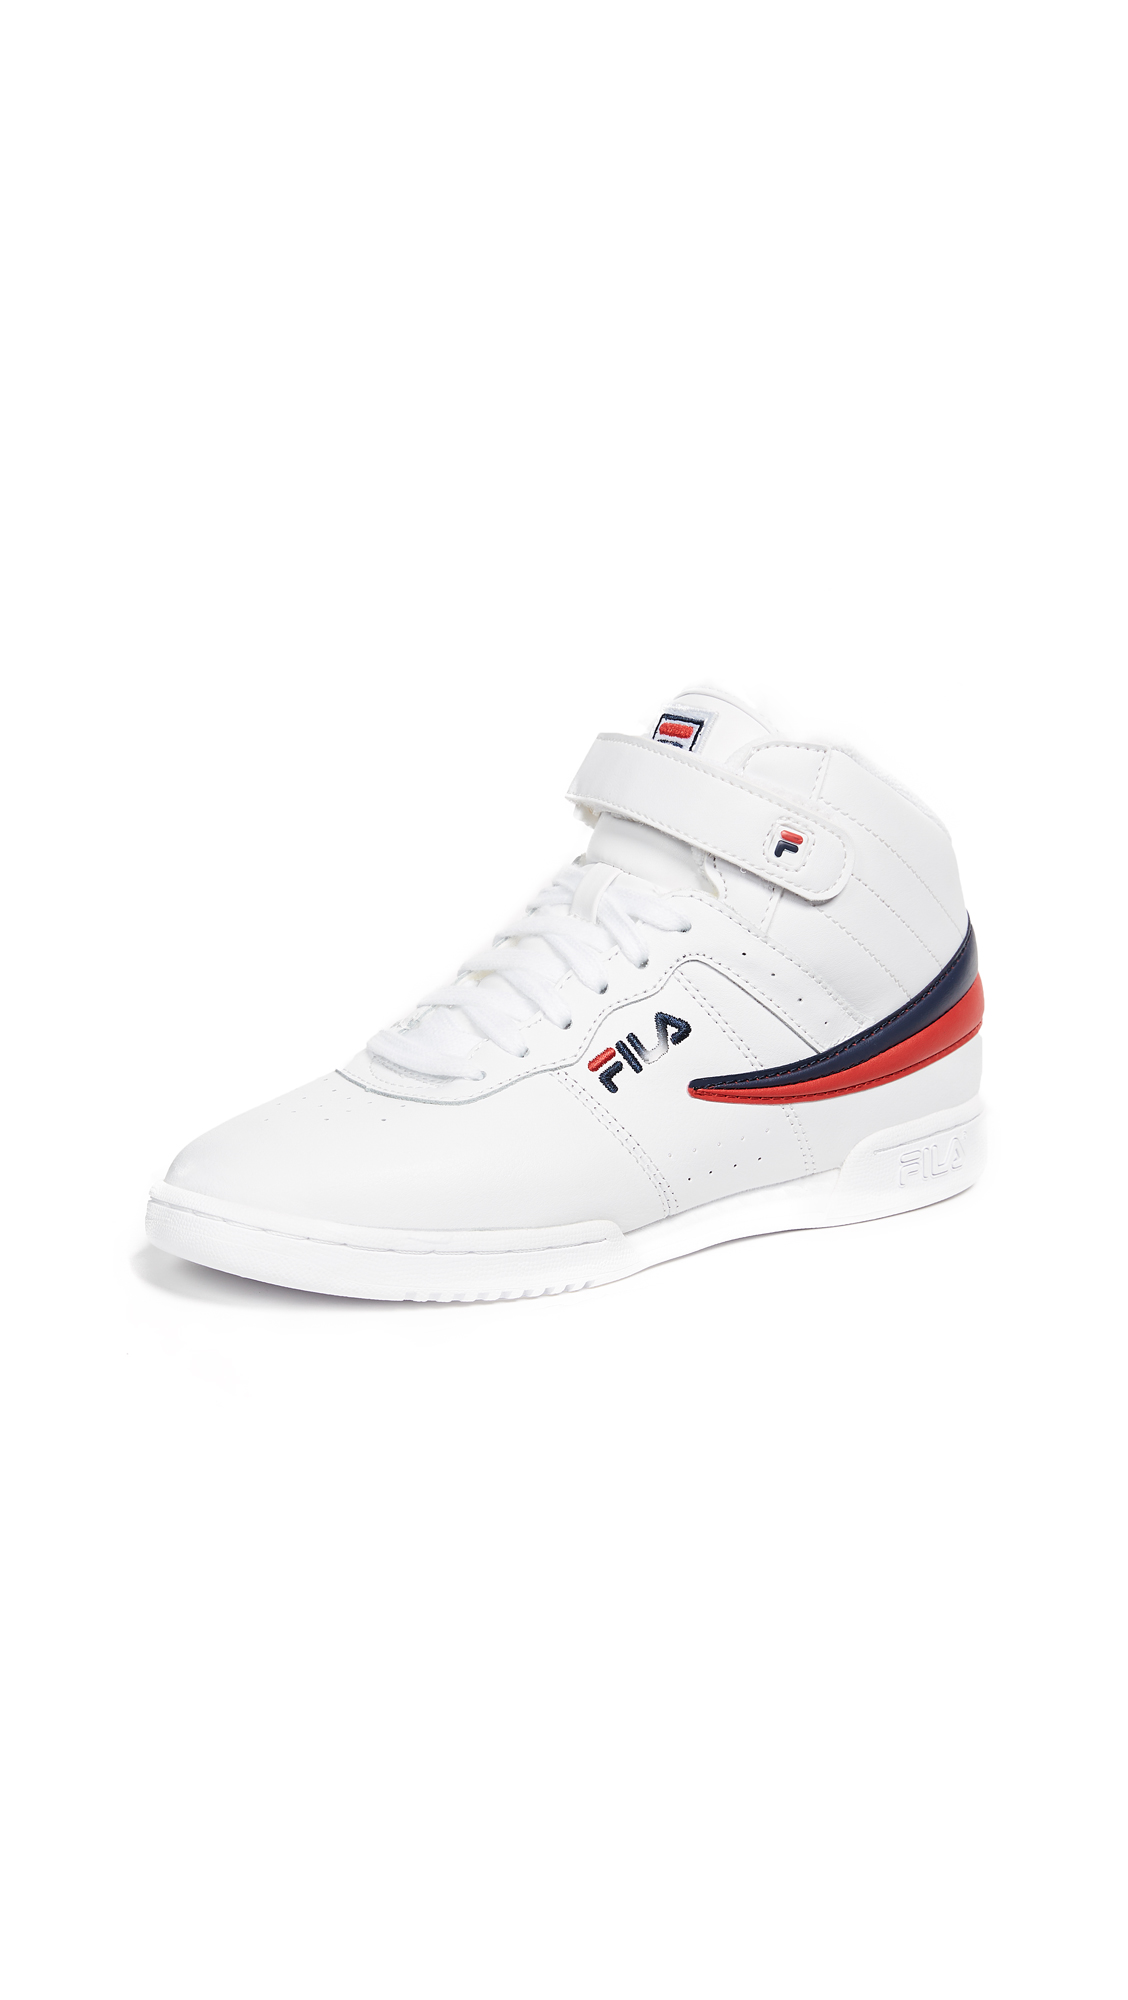 Fila F-13 Sneakers - White/Fila Navy/Fila Red